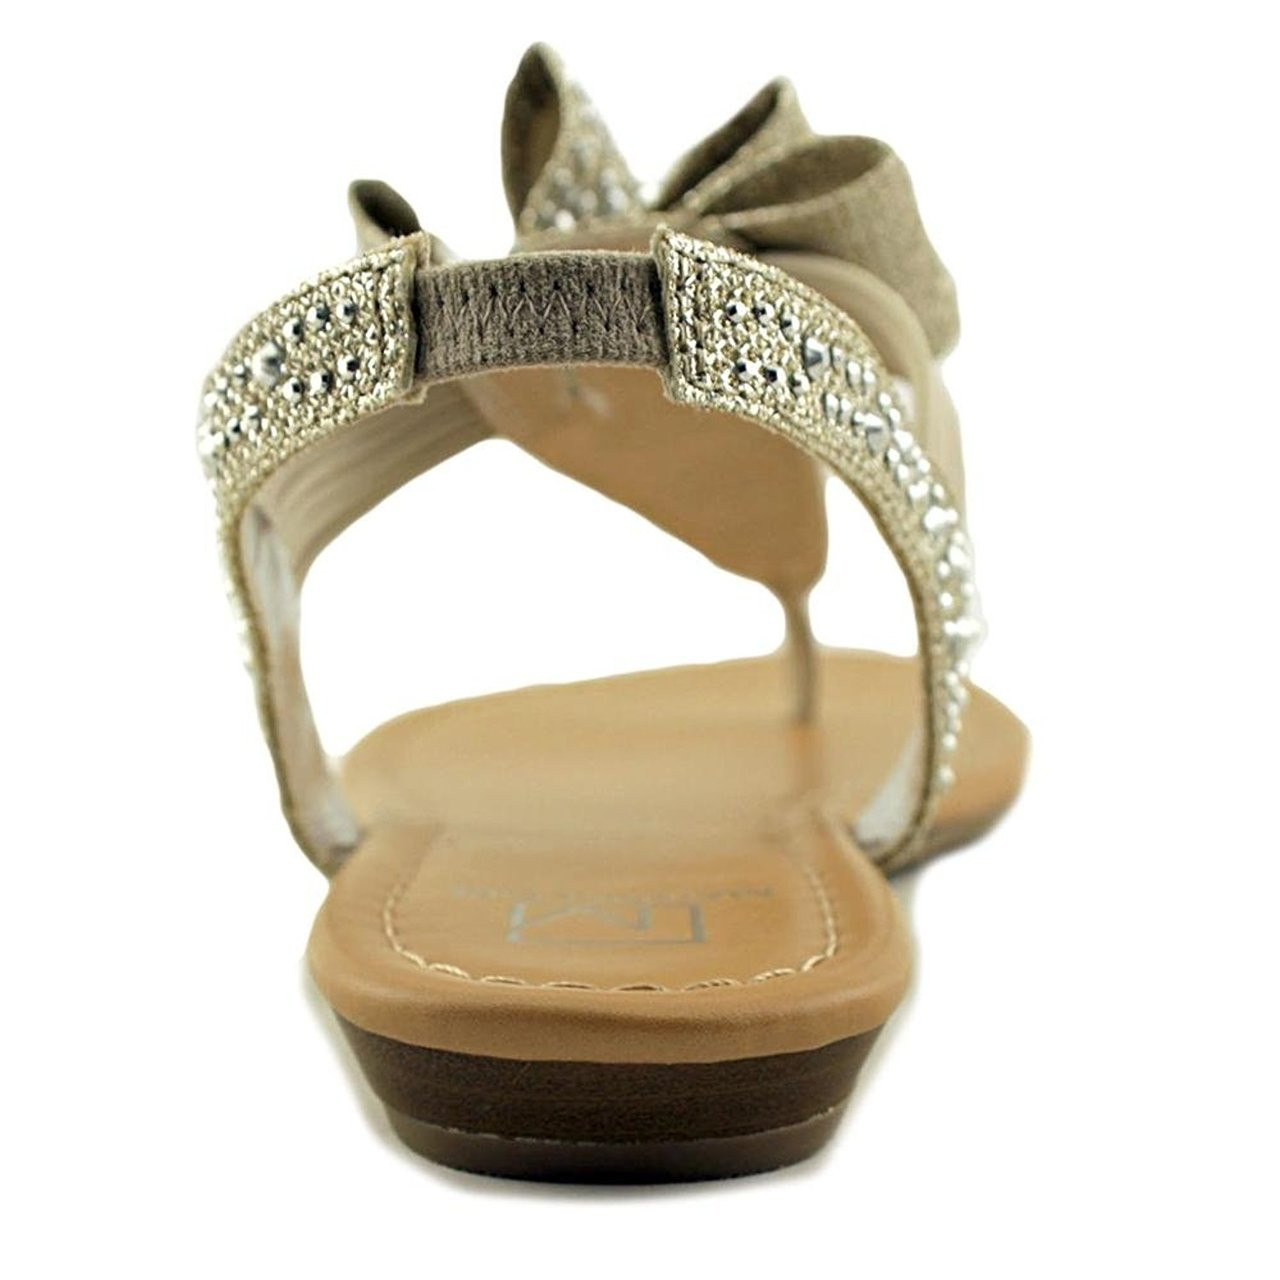 ce50f56e98fc Material Girl MG35 Shayleen Rhinestone Bow T-Strap Sandals -  Silver~pp-2f7397c5 - Boston Store